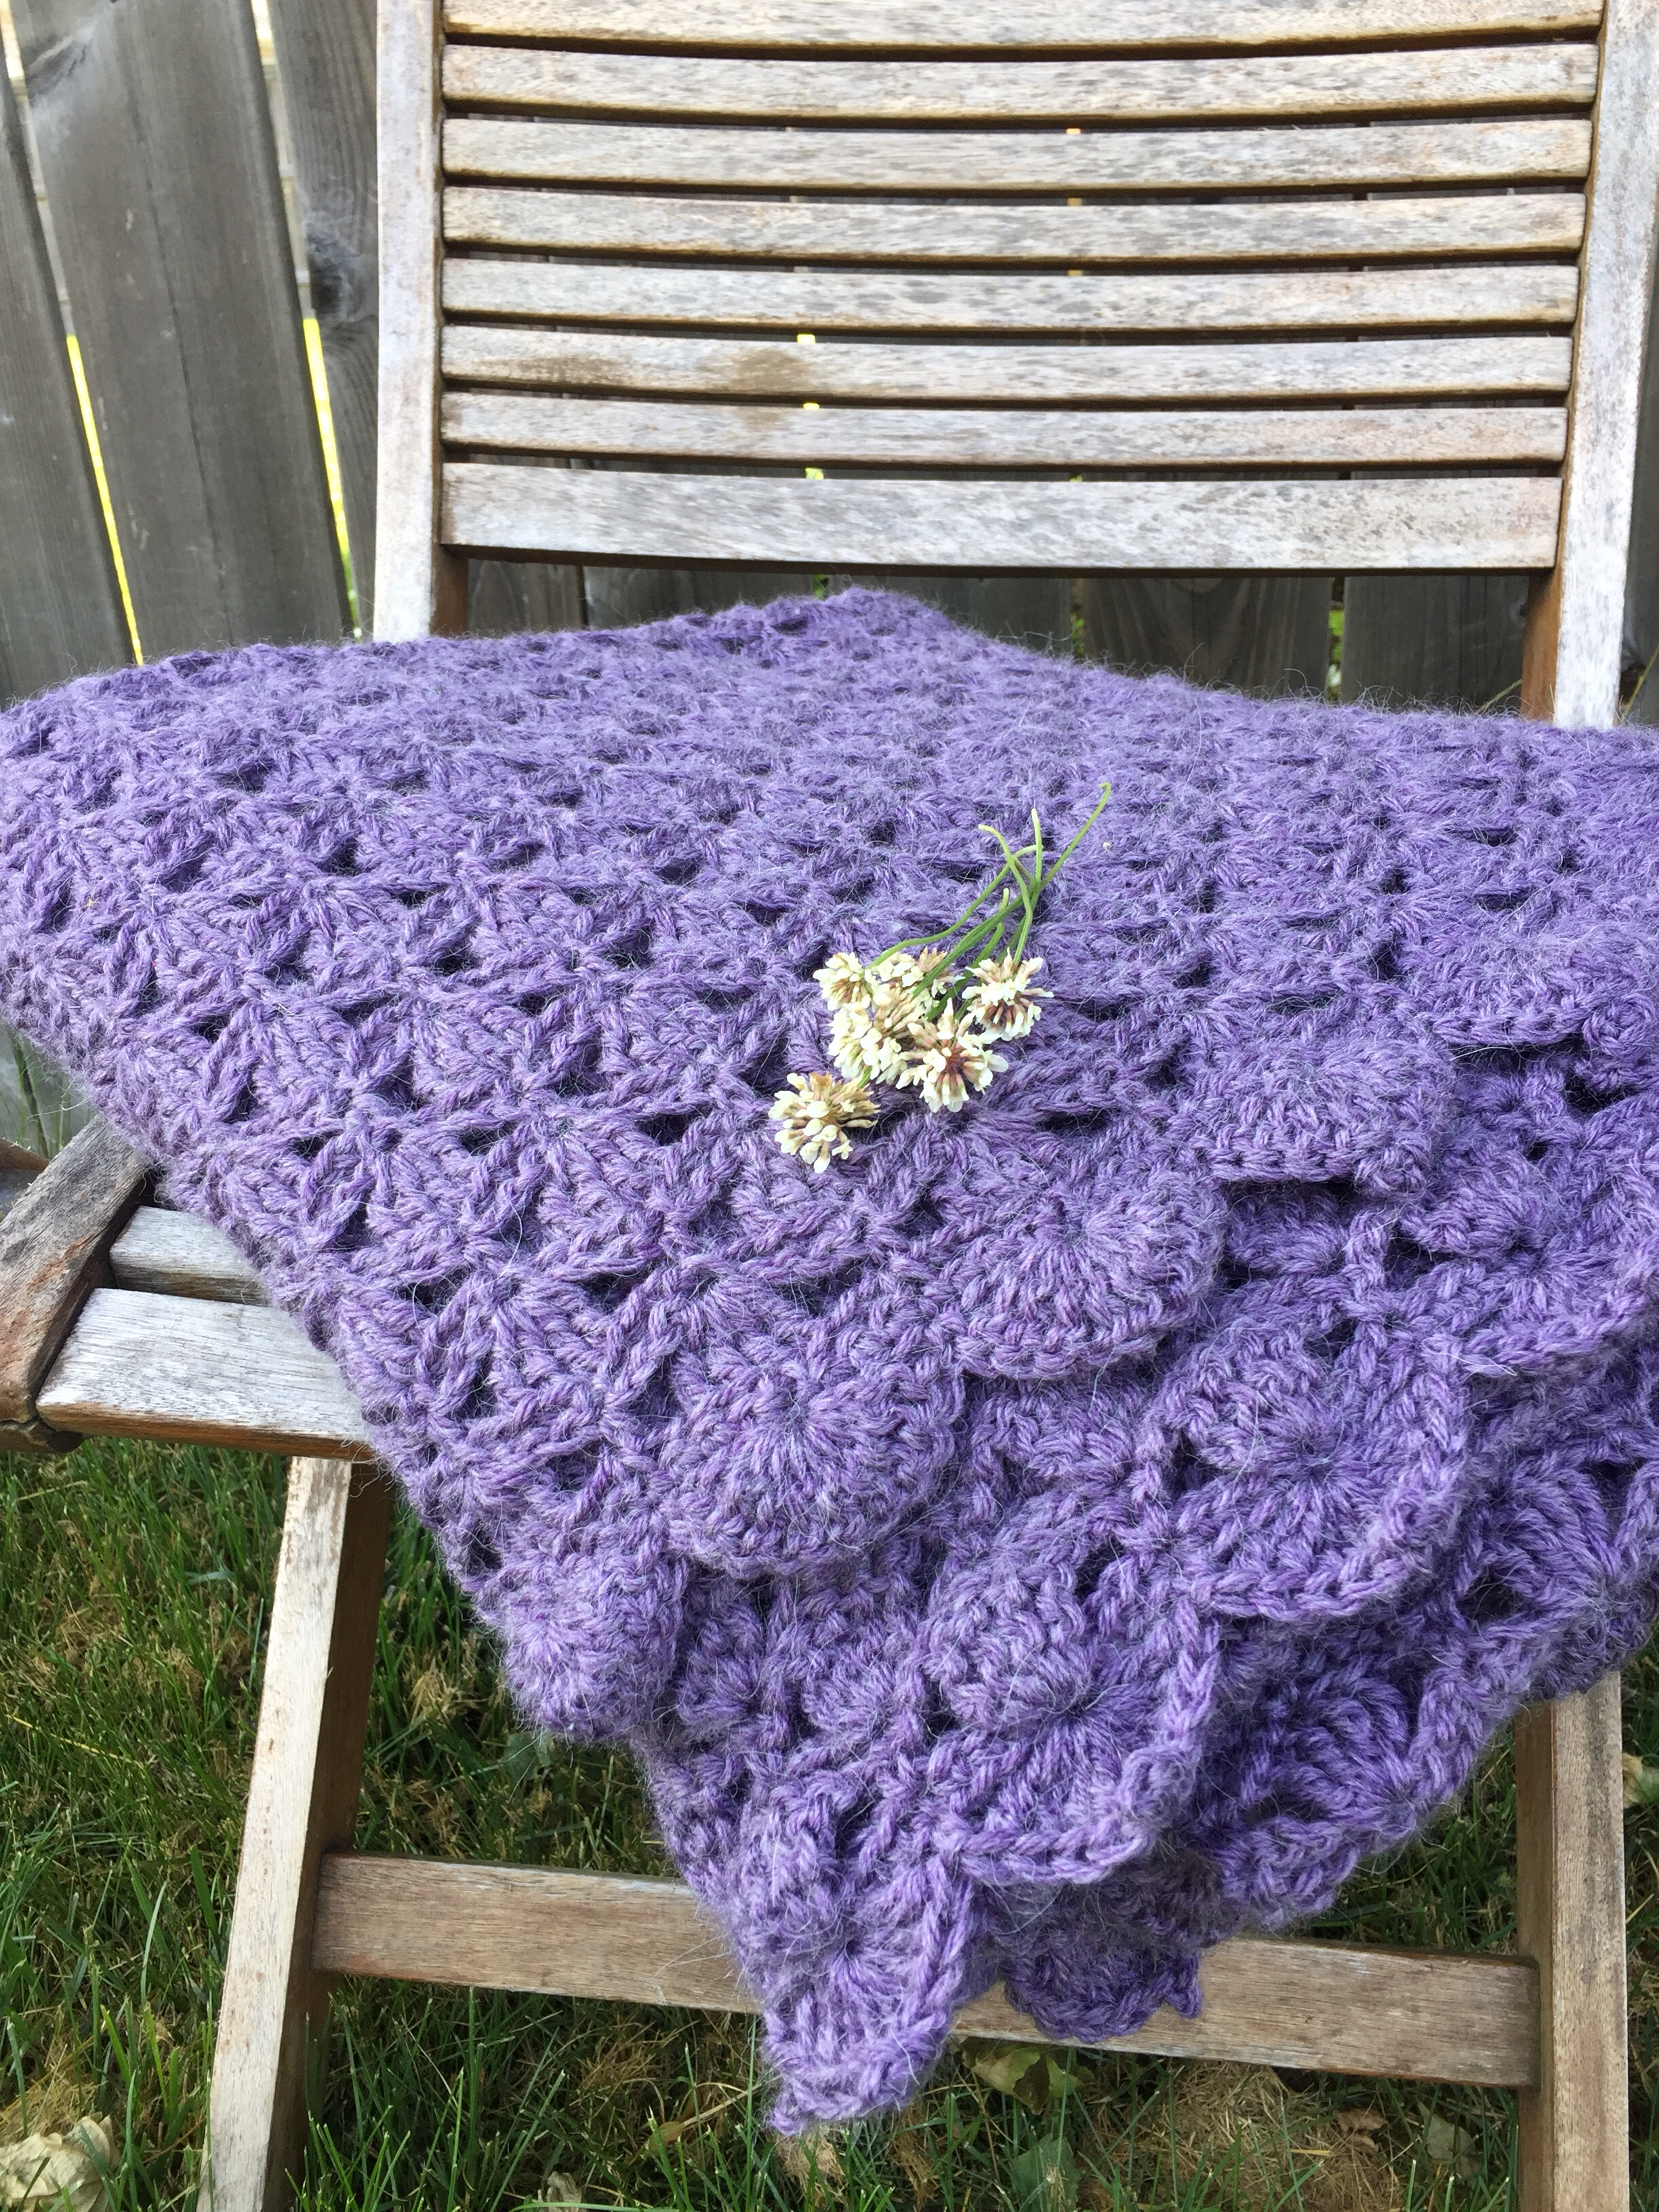 clover meadows crochet throw